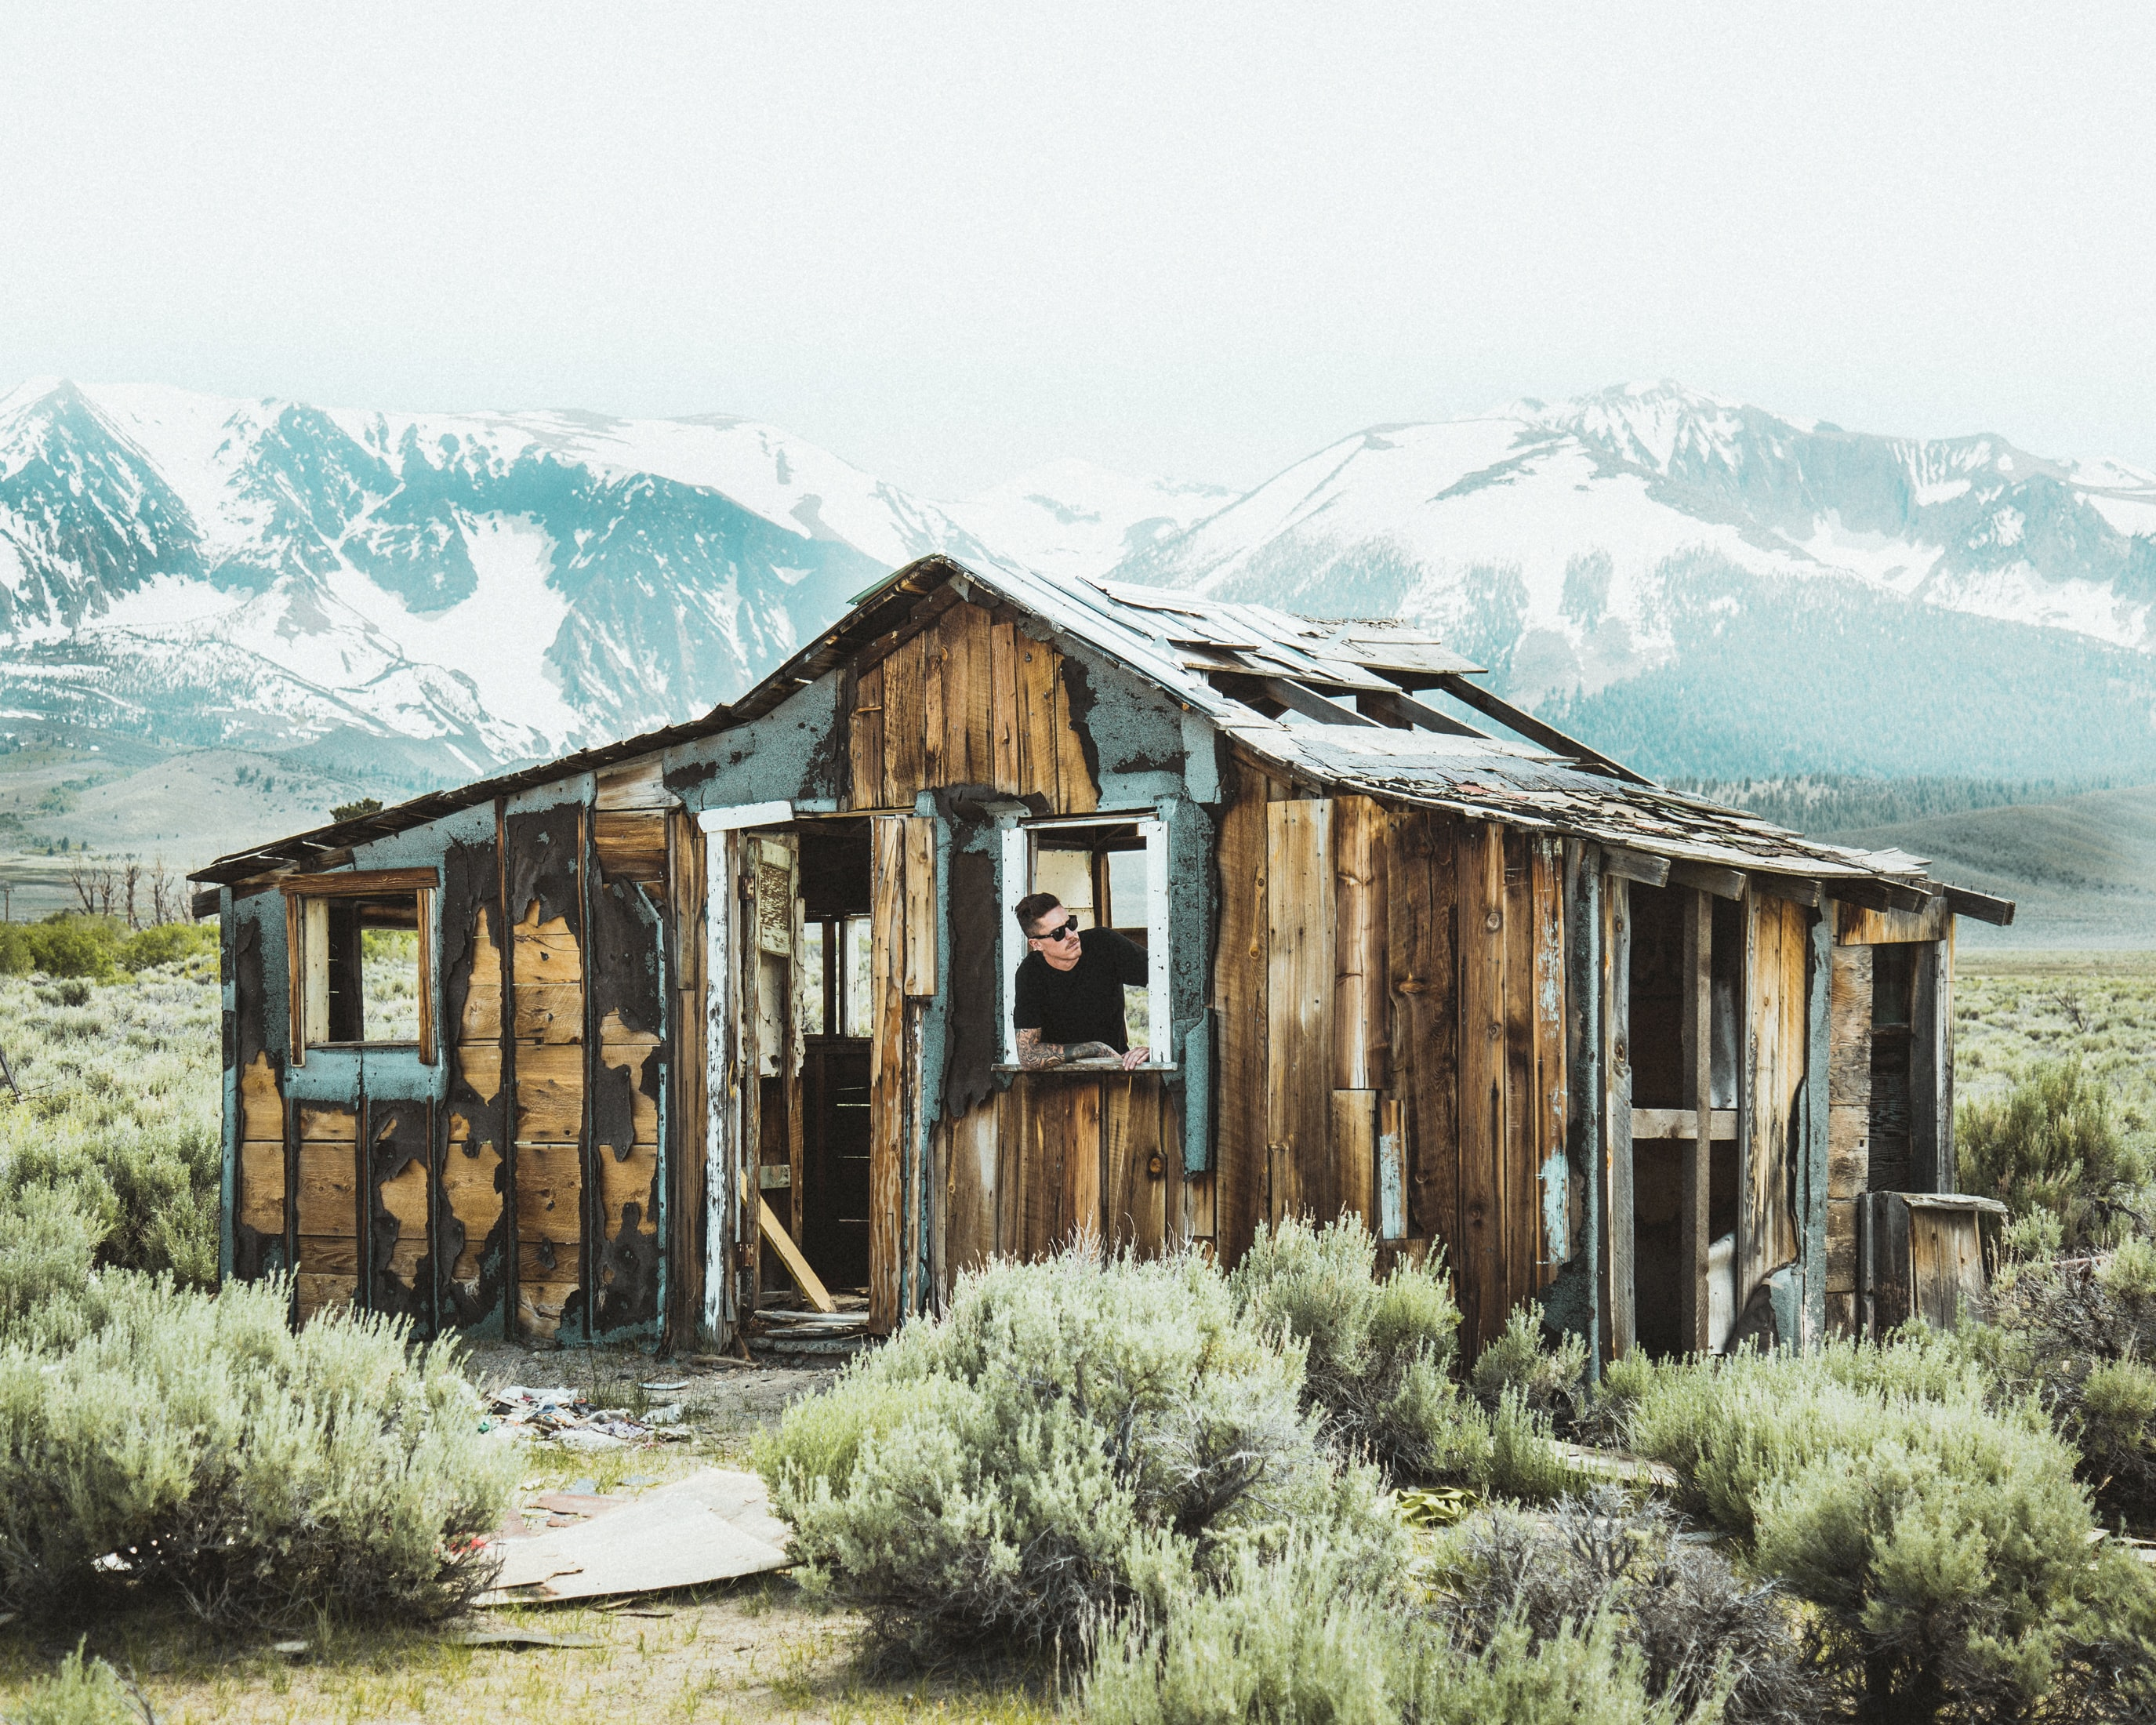 A man in sunglasses looks out of a dilapidated cabin in the mountains